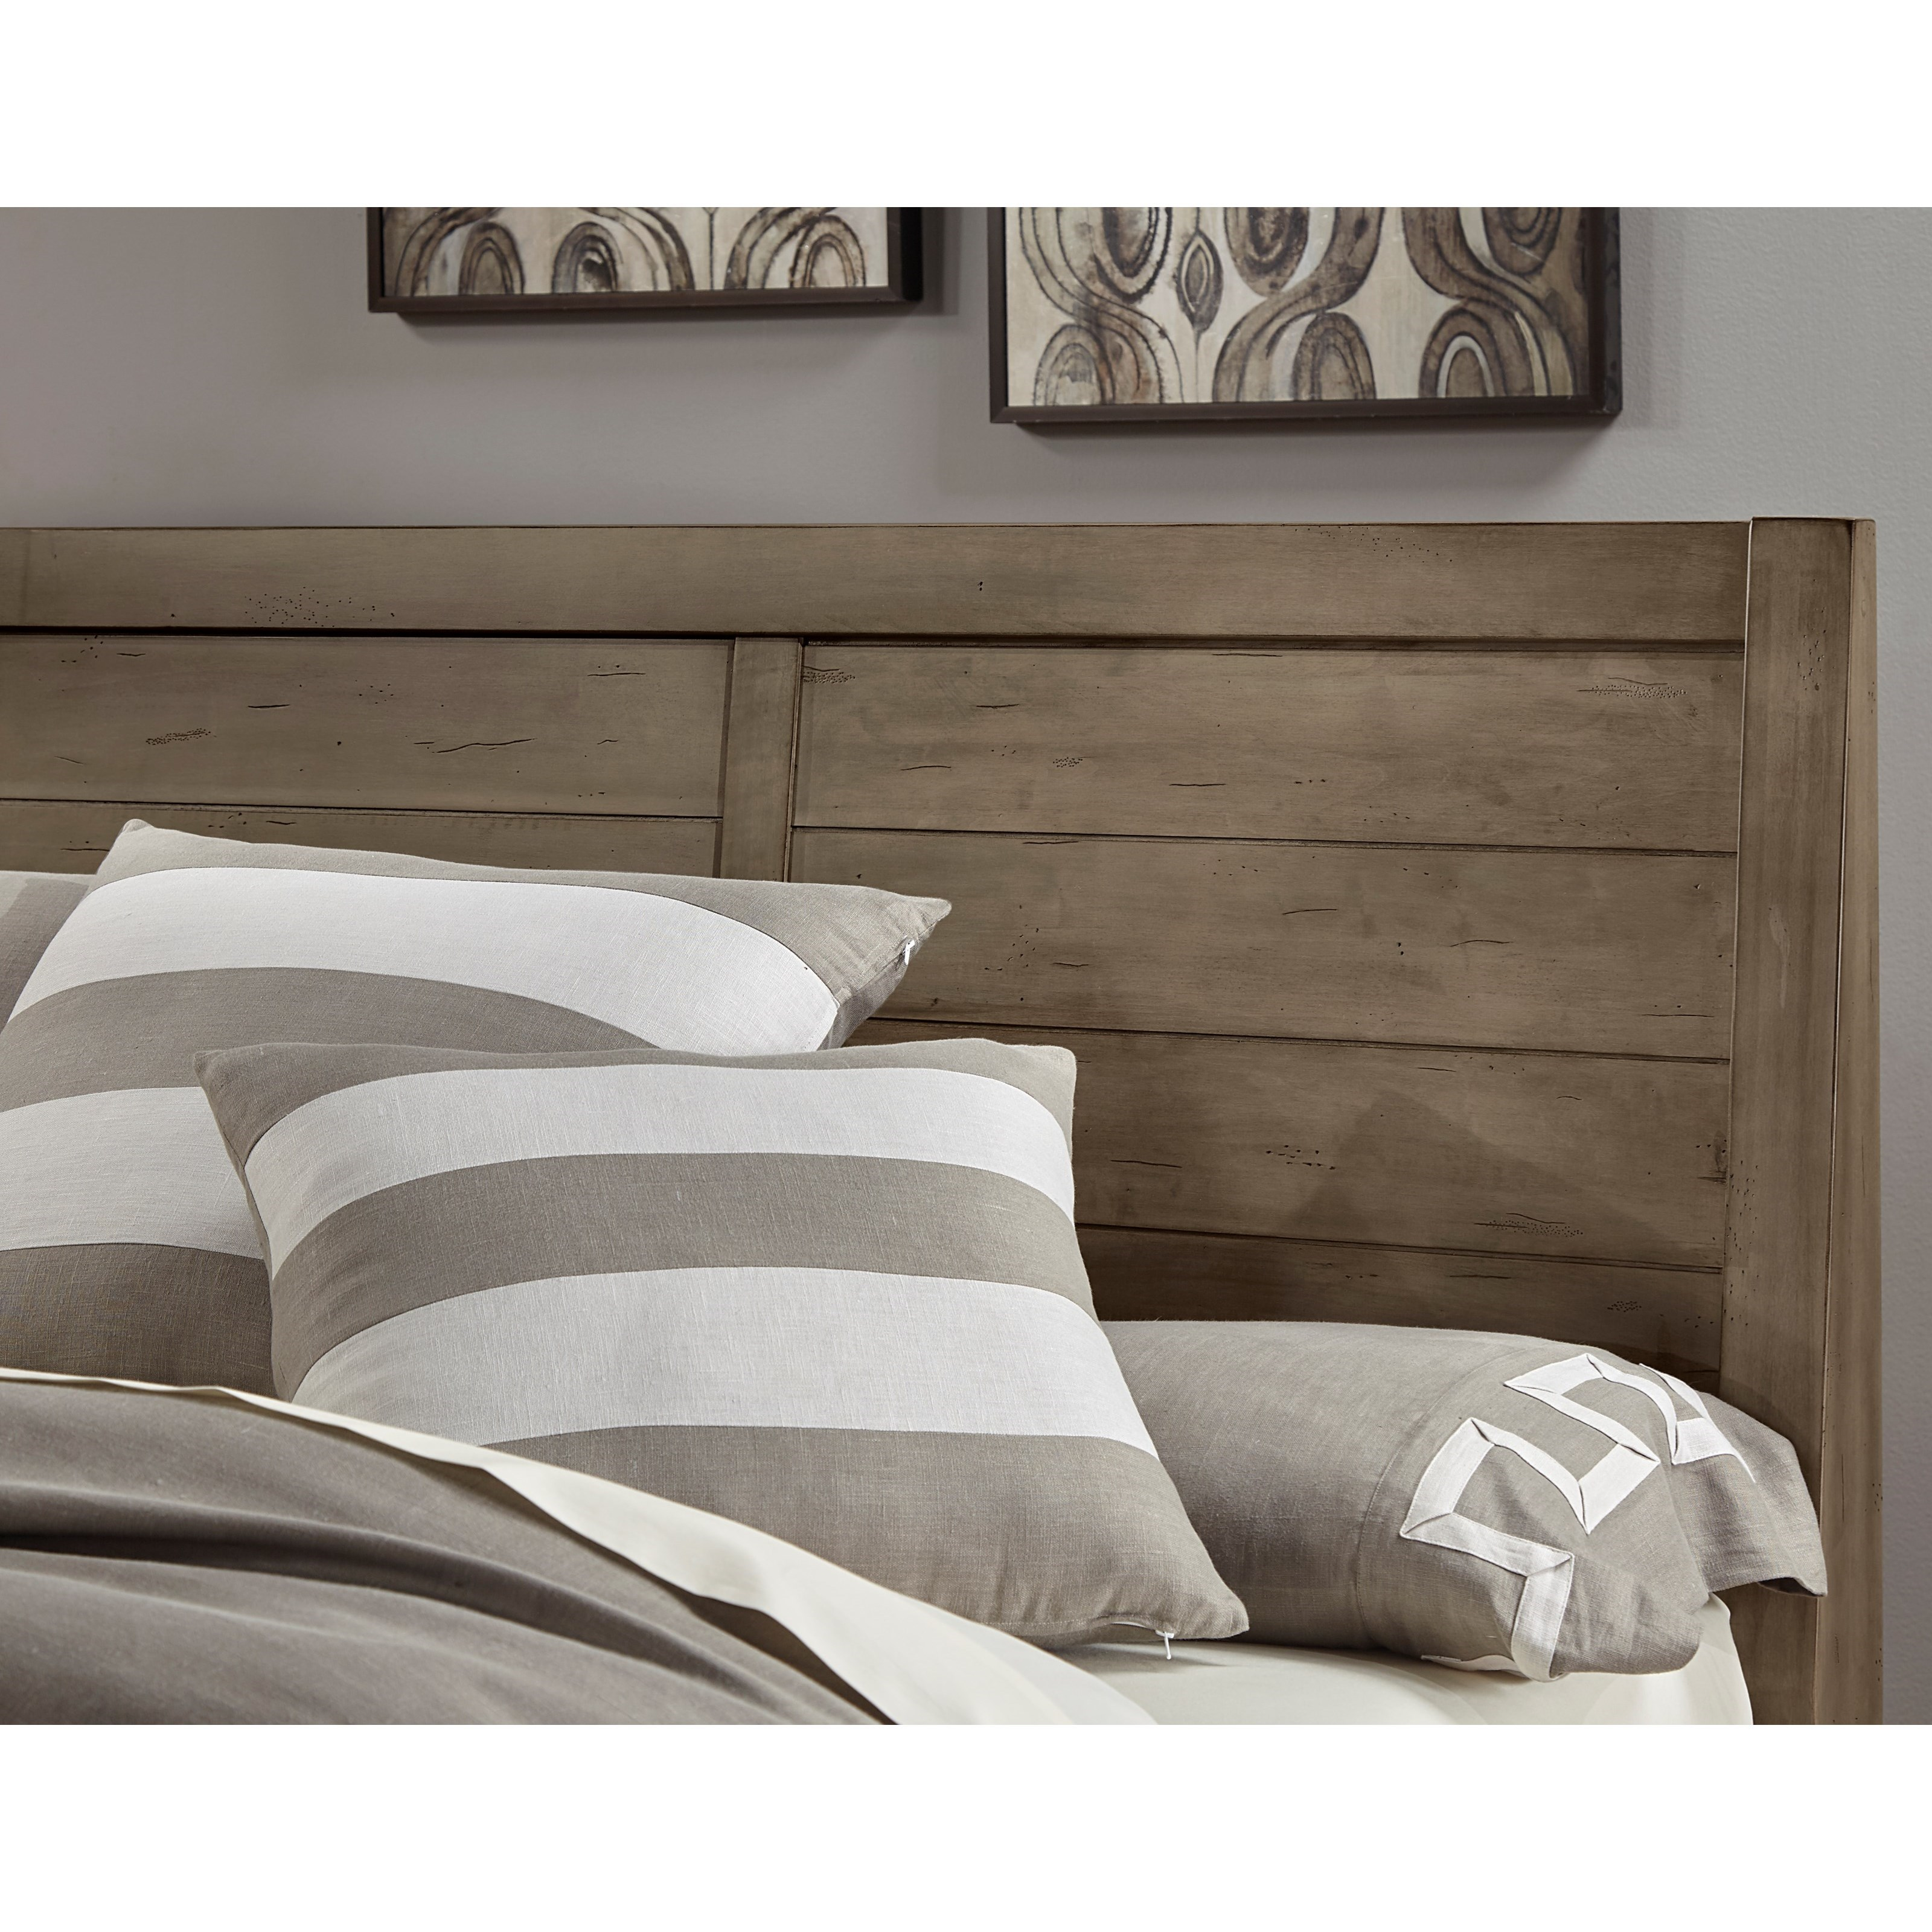 Sedgwick Queen Headboard by Artisan & Post at Northeast Factory Direct